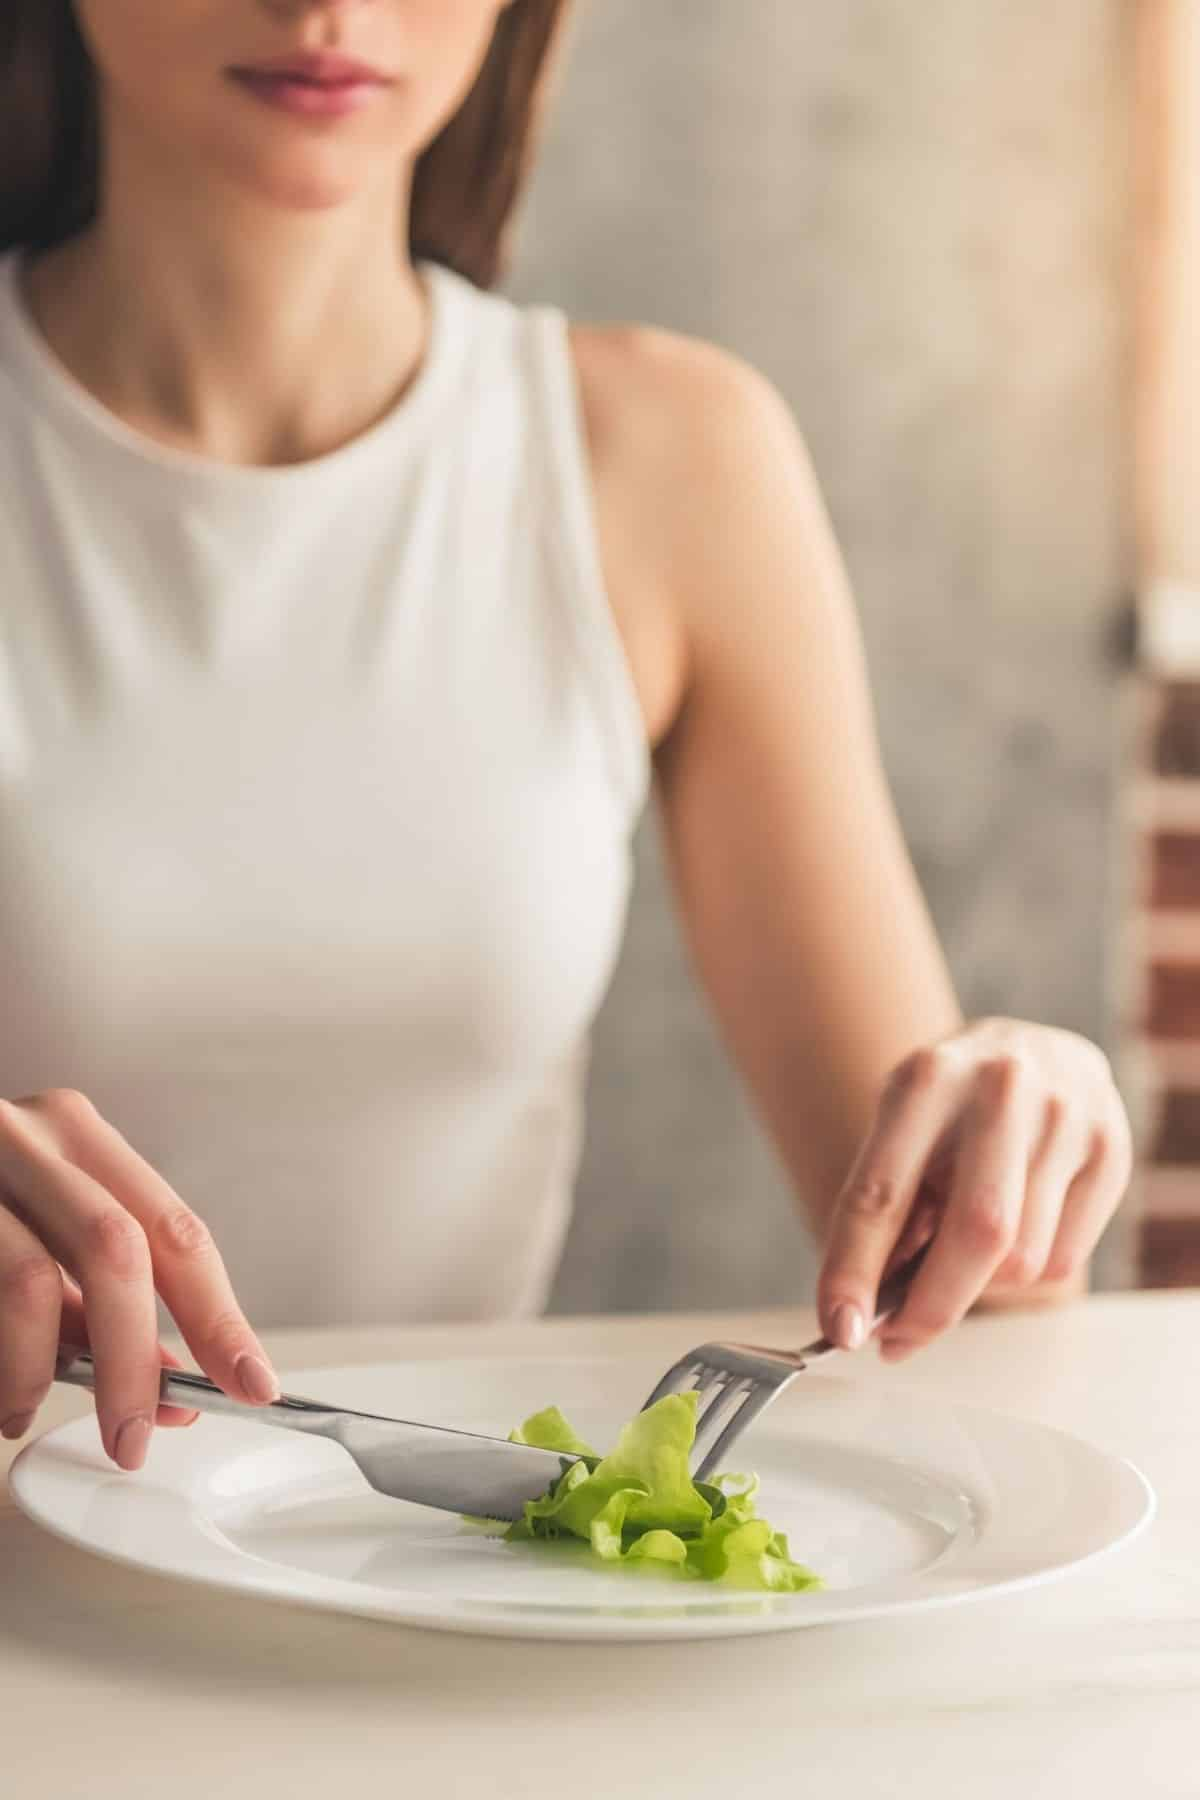 woman with eating disorder cutting a piece of lettuce